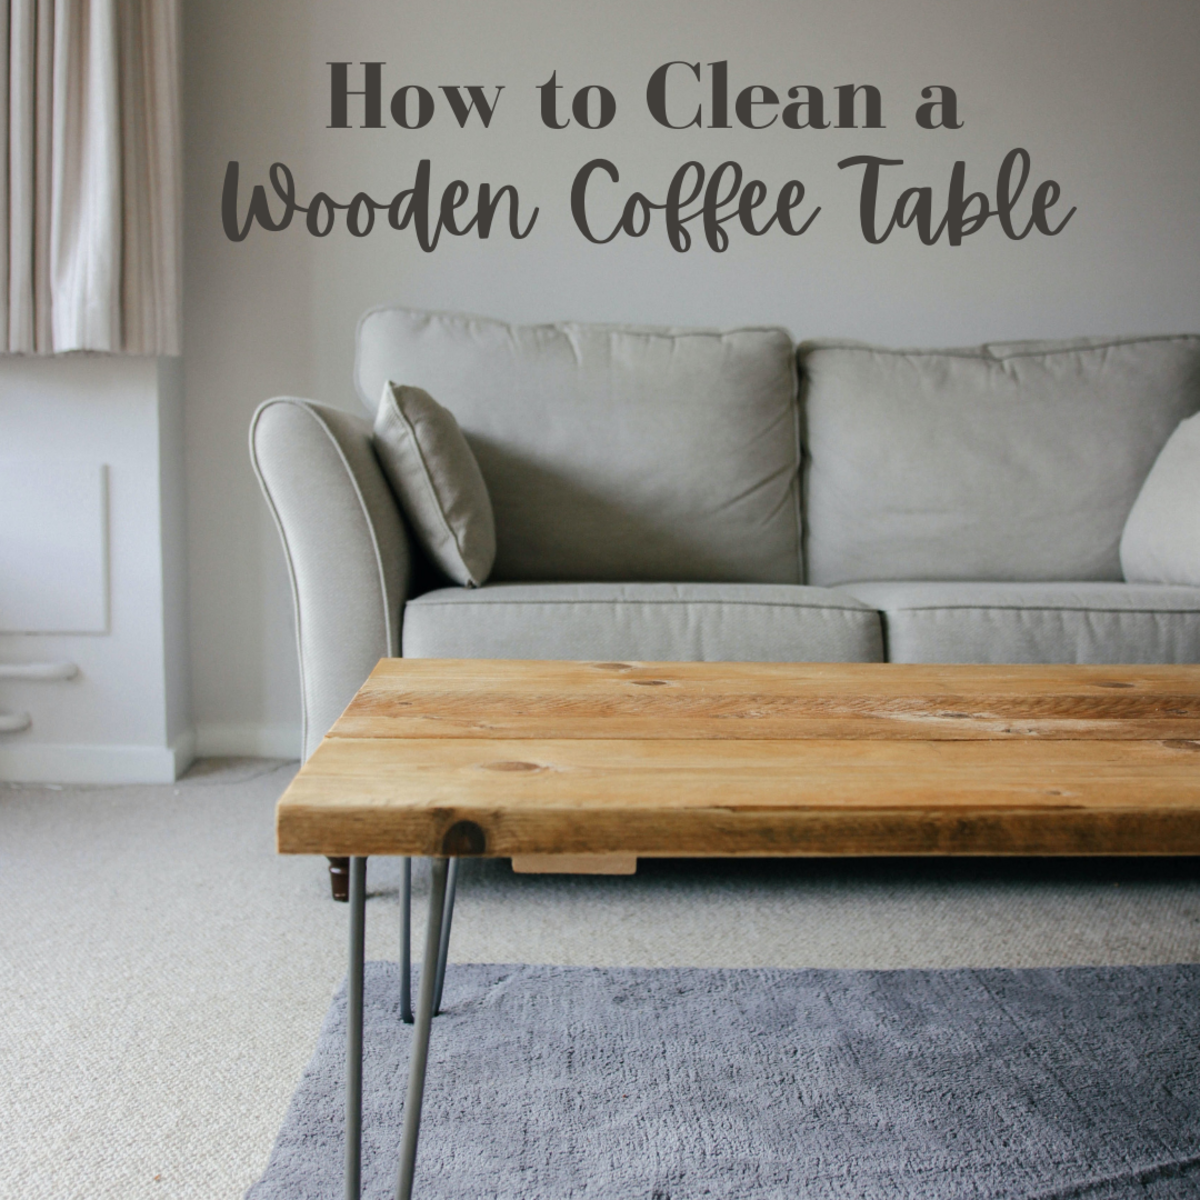 Wooden coffee tables require special care—here's how to maintain them properly.